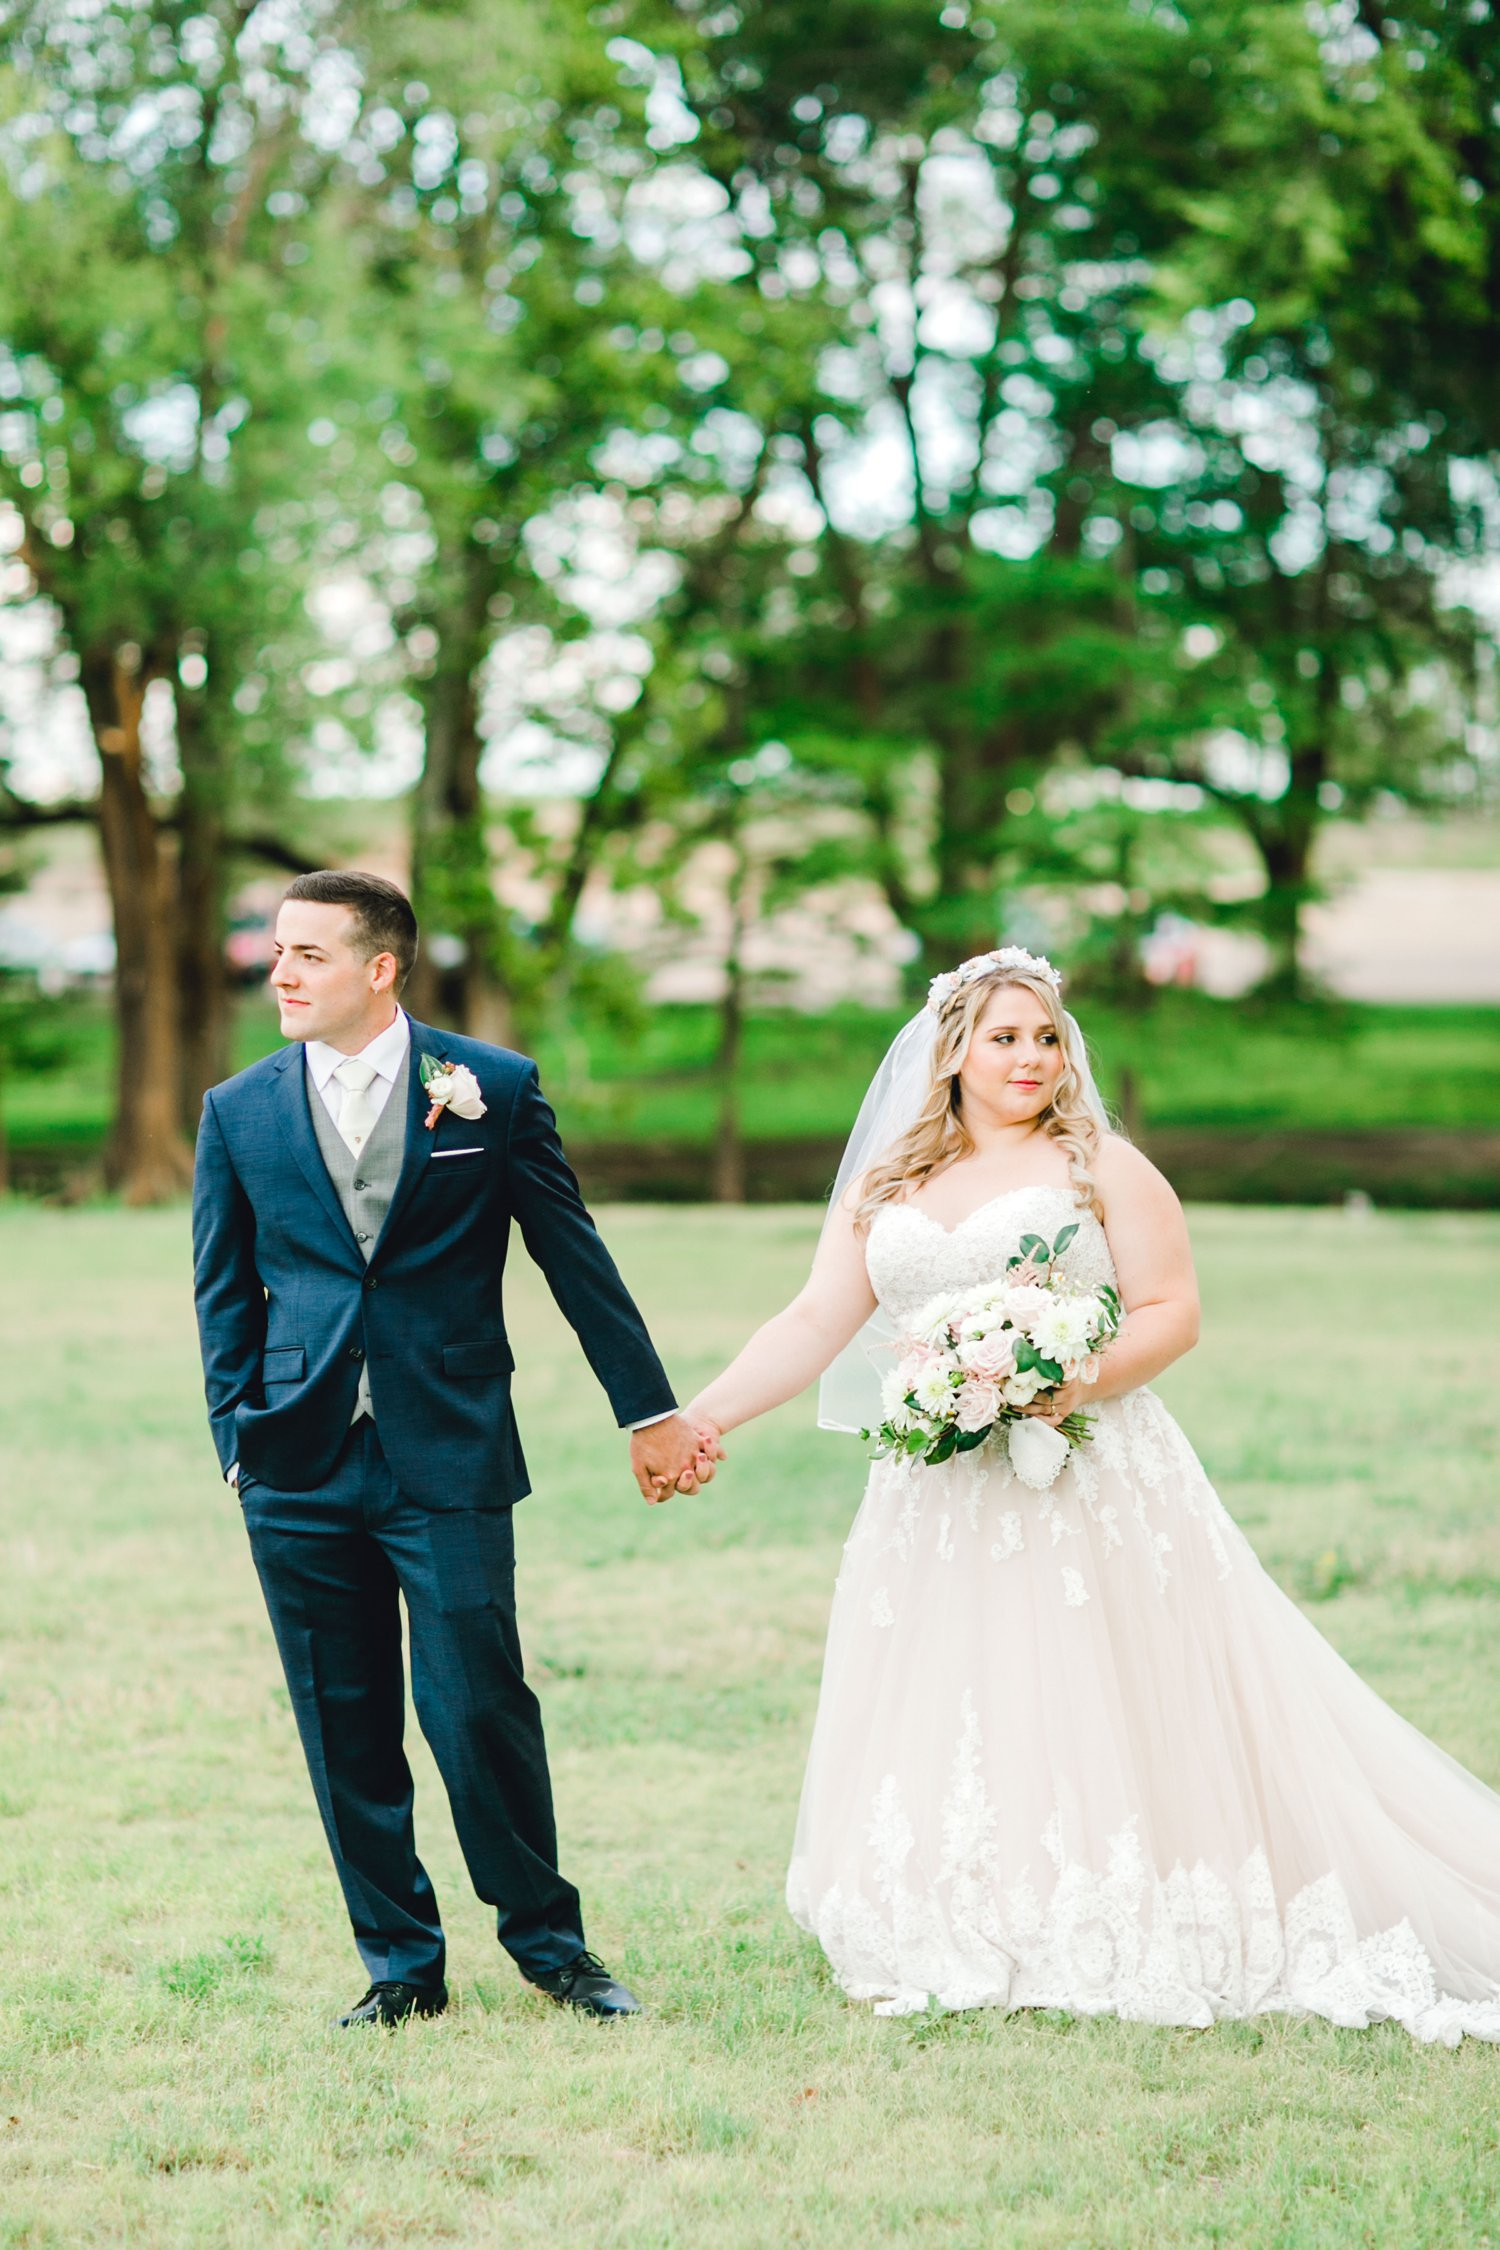 SARAH_AND_GEOFFREY_SHARP_SPIRIT_RANCH_WEDDING_ALLEEJ_LUBBOCK_TX_0113.jpg